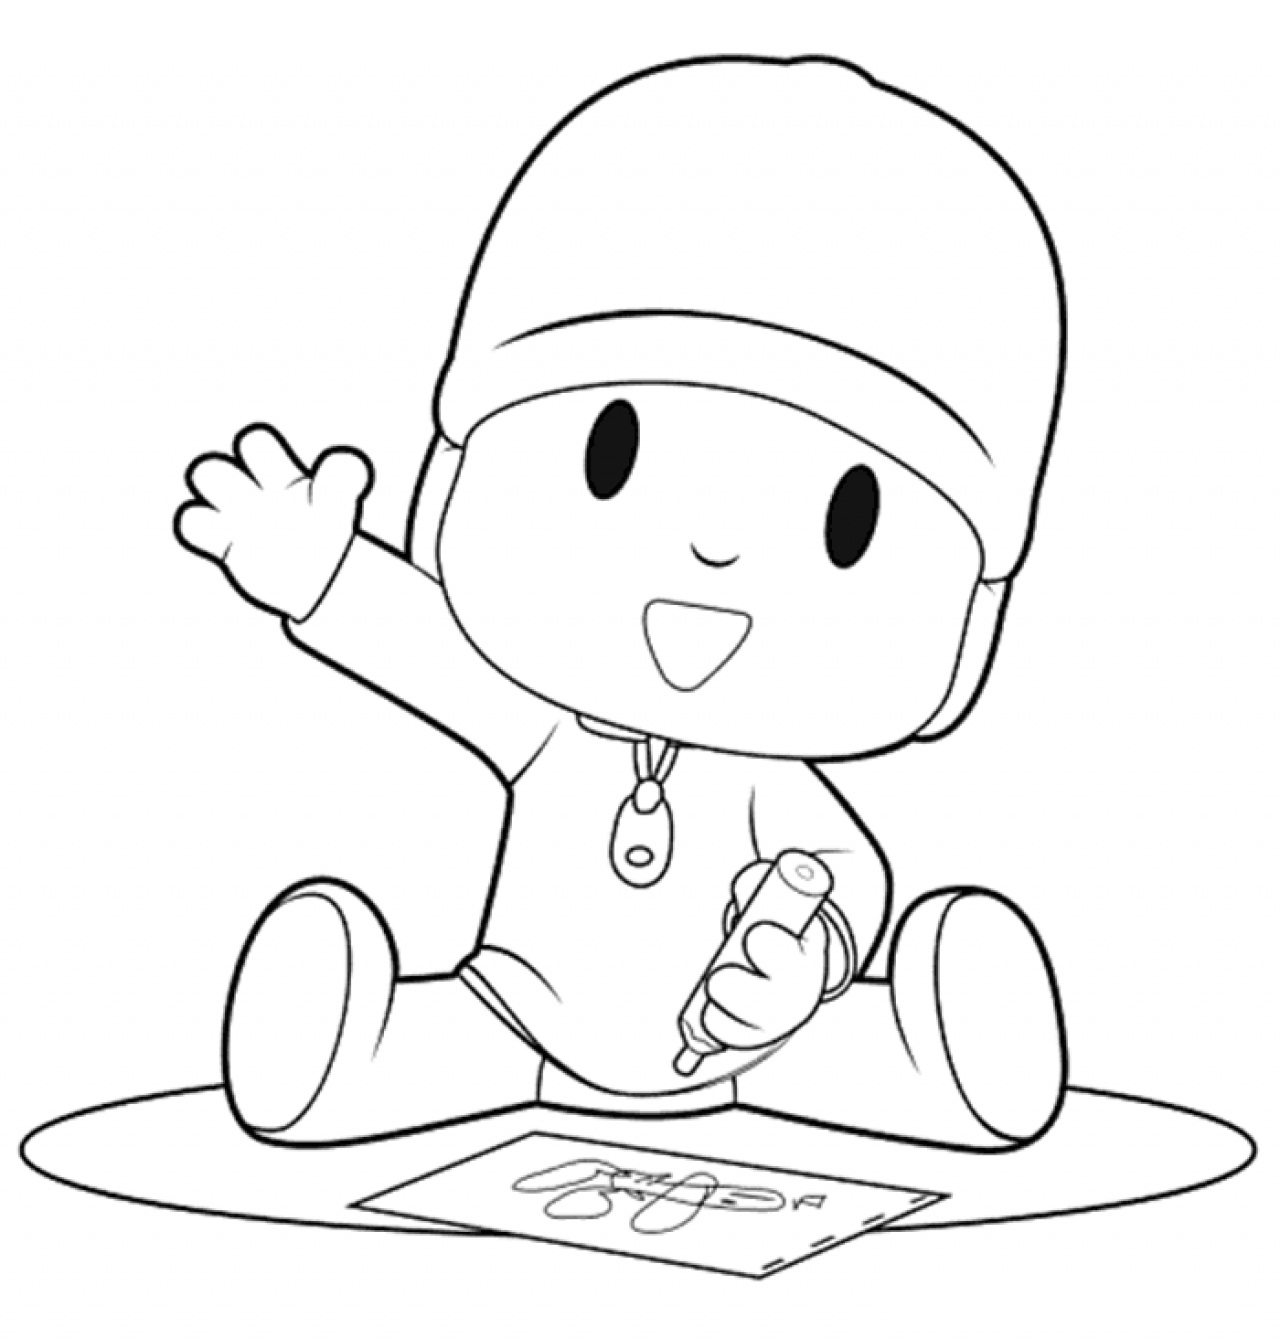 pocoyo coloring pages pocoyo coloring pages to download and print for free pages coloring pocoyo